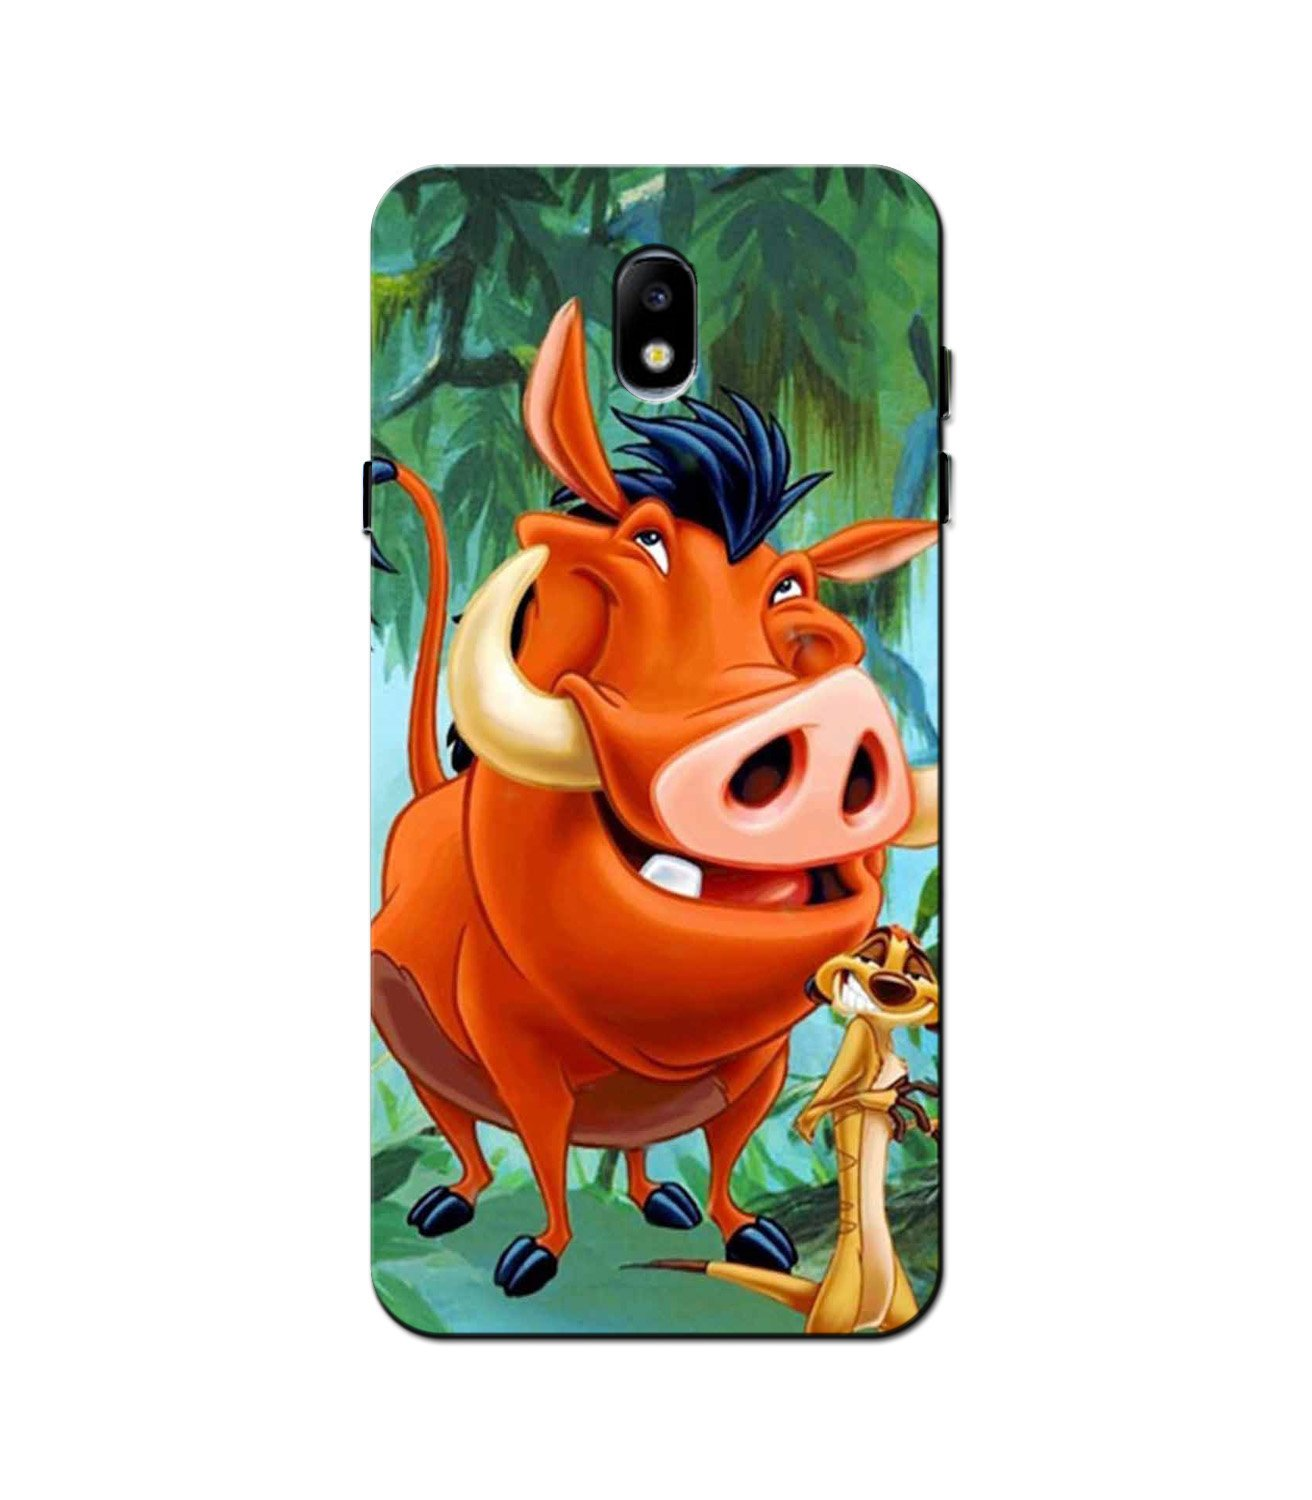 Timon and Pumbaa Mobile Back Case for Galaxy J7 Pro   (Design - 305)